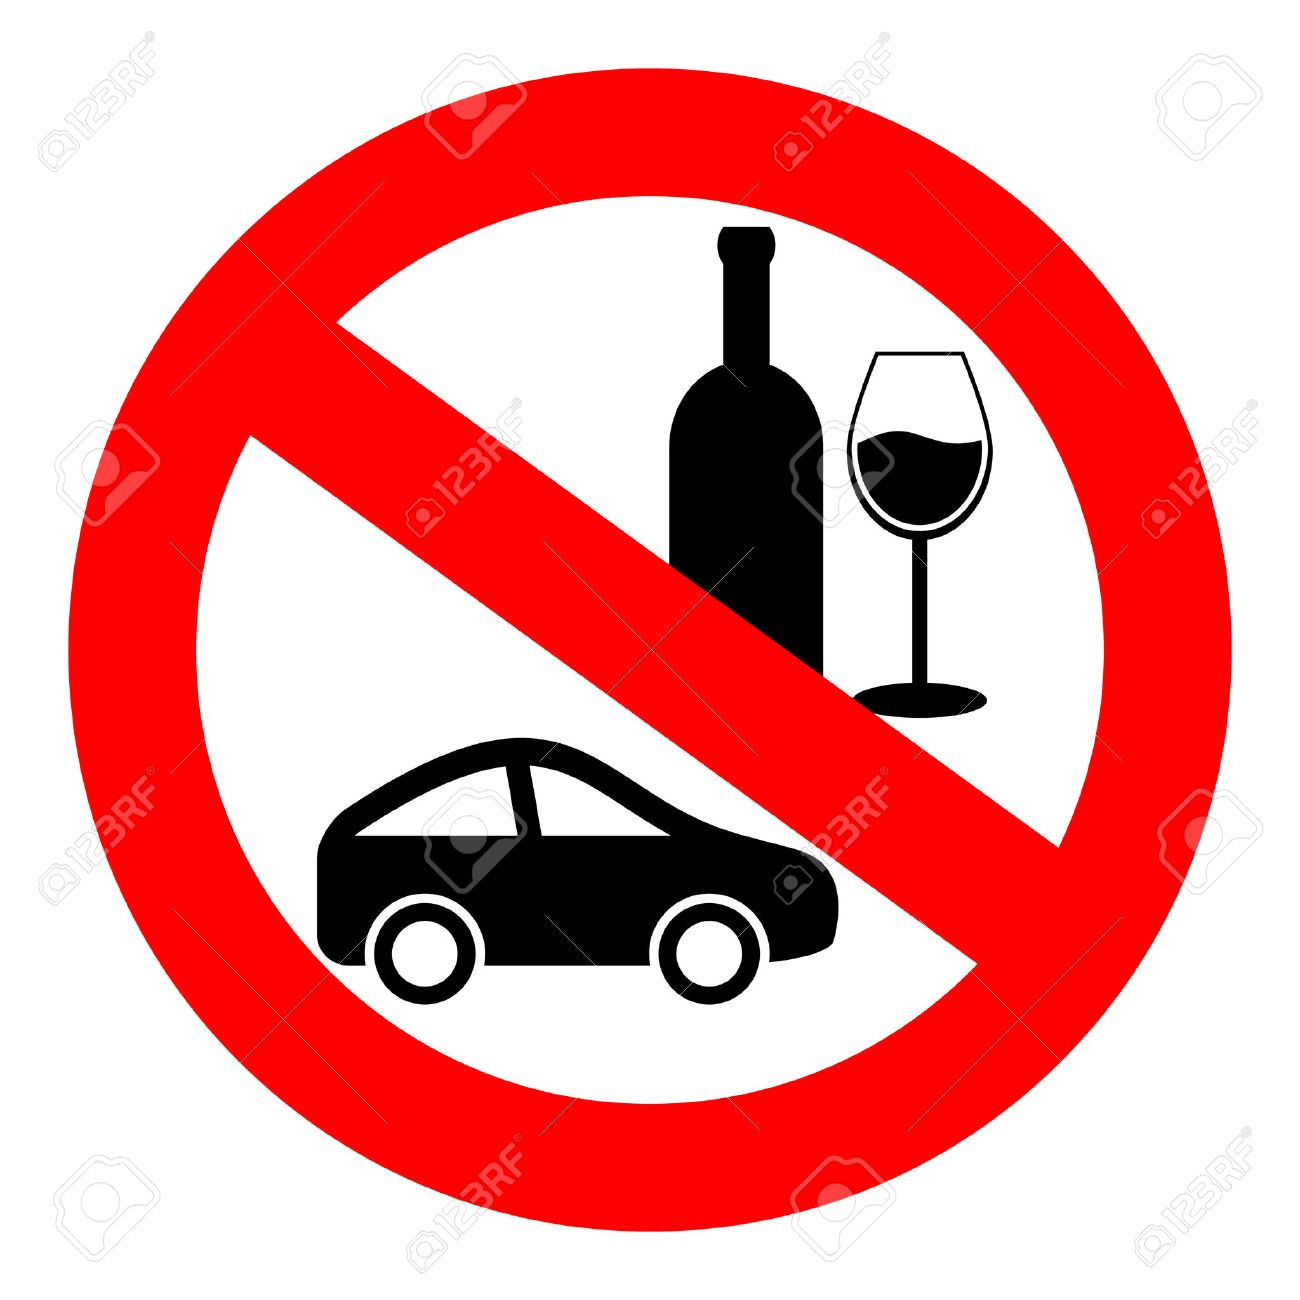 No drink and drive sign Stock Vector - 23071308